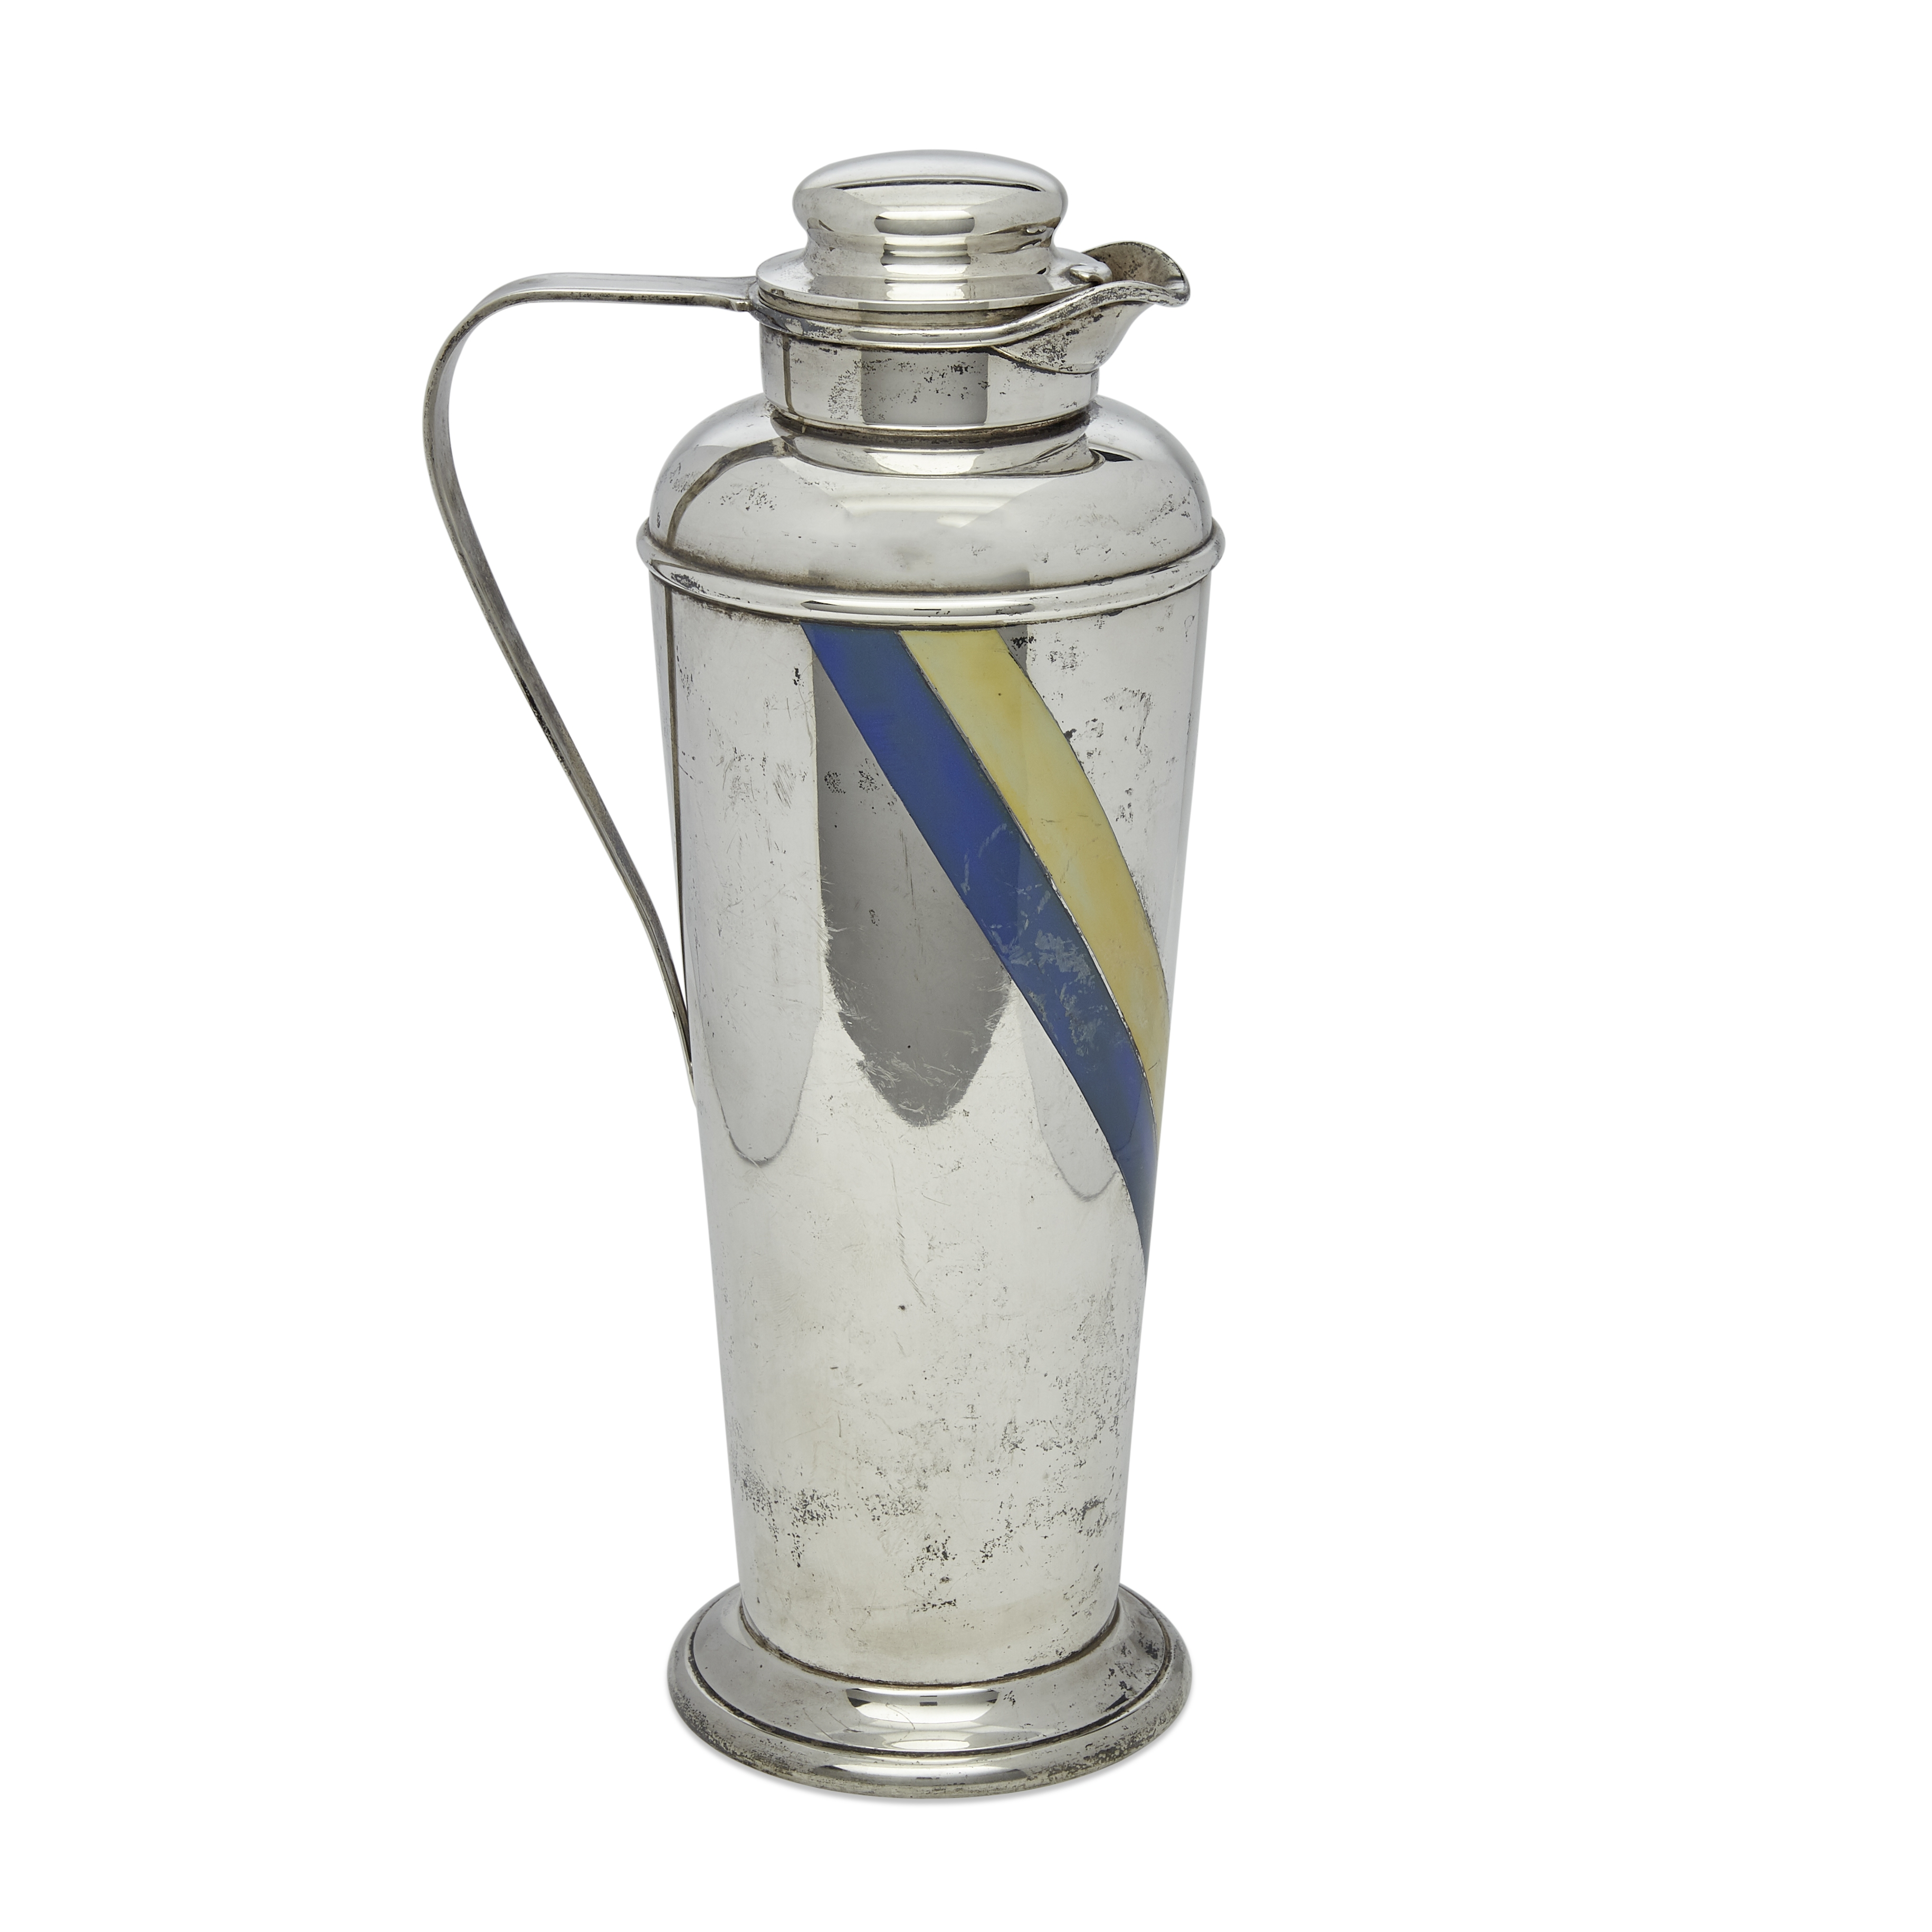 An American sterling silver and enamel cocktail shaker by Gorham Mfg. Co., Providence, RI, 1930